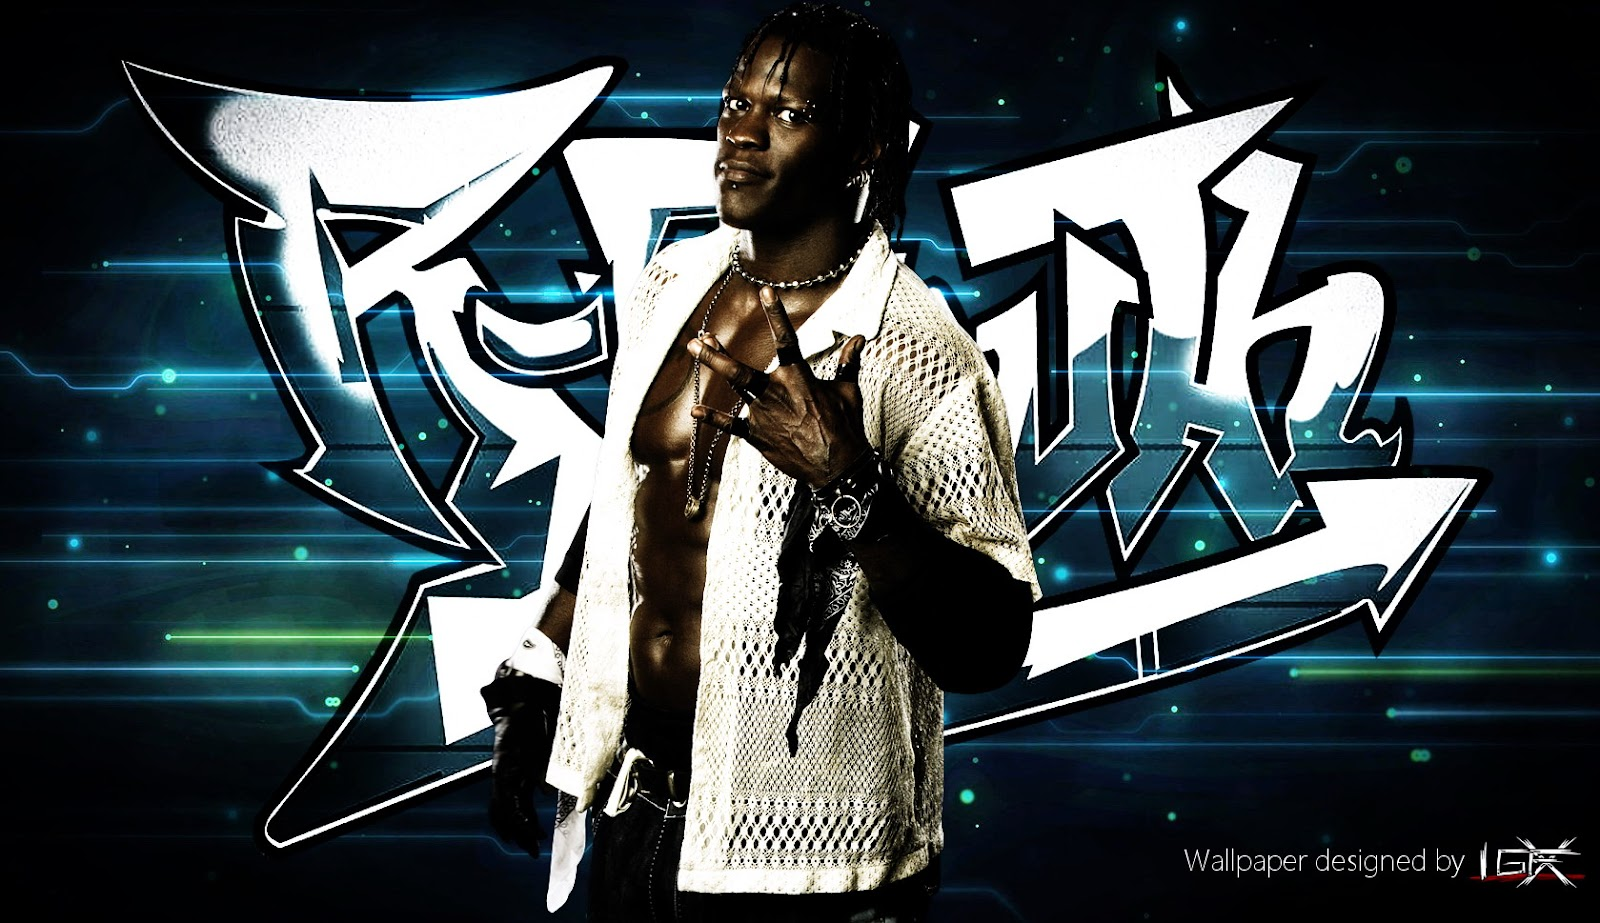 http://1.bp.blogspot.com/-GFJThZcdbr0/T525OESqCFI/AAAAAAAACJw/zOuV-Gb2RRM/s1600/R-Truth-West-Coast-Wallpaper-WallpapersWWE.com.jpg